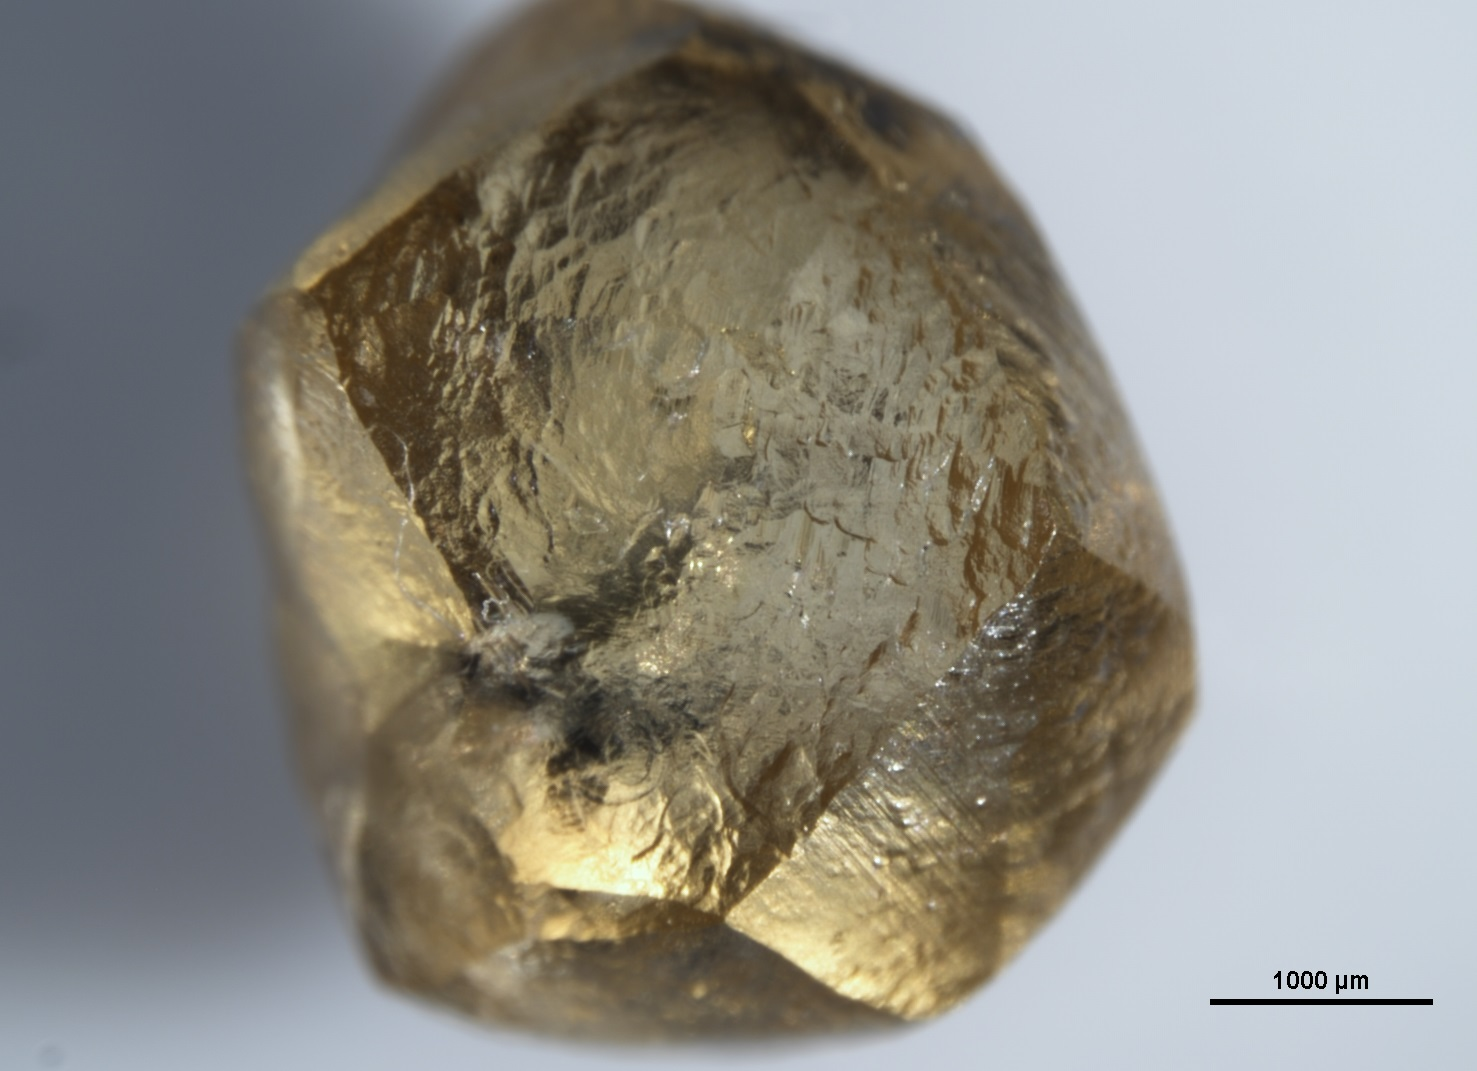 Images of diamonds from Sierra Leone with sulfur-containing mineral inclusions courtesy of the Gemological Institute of America